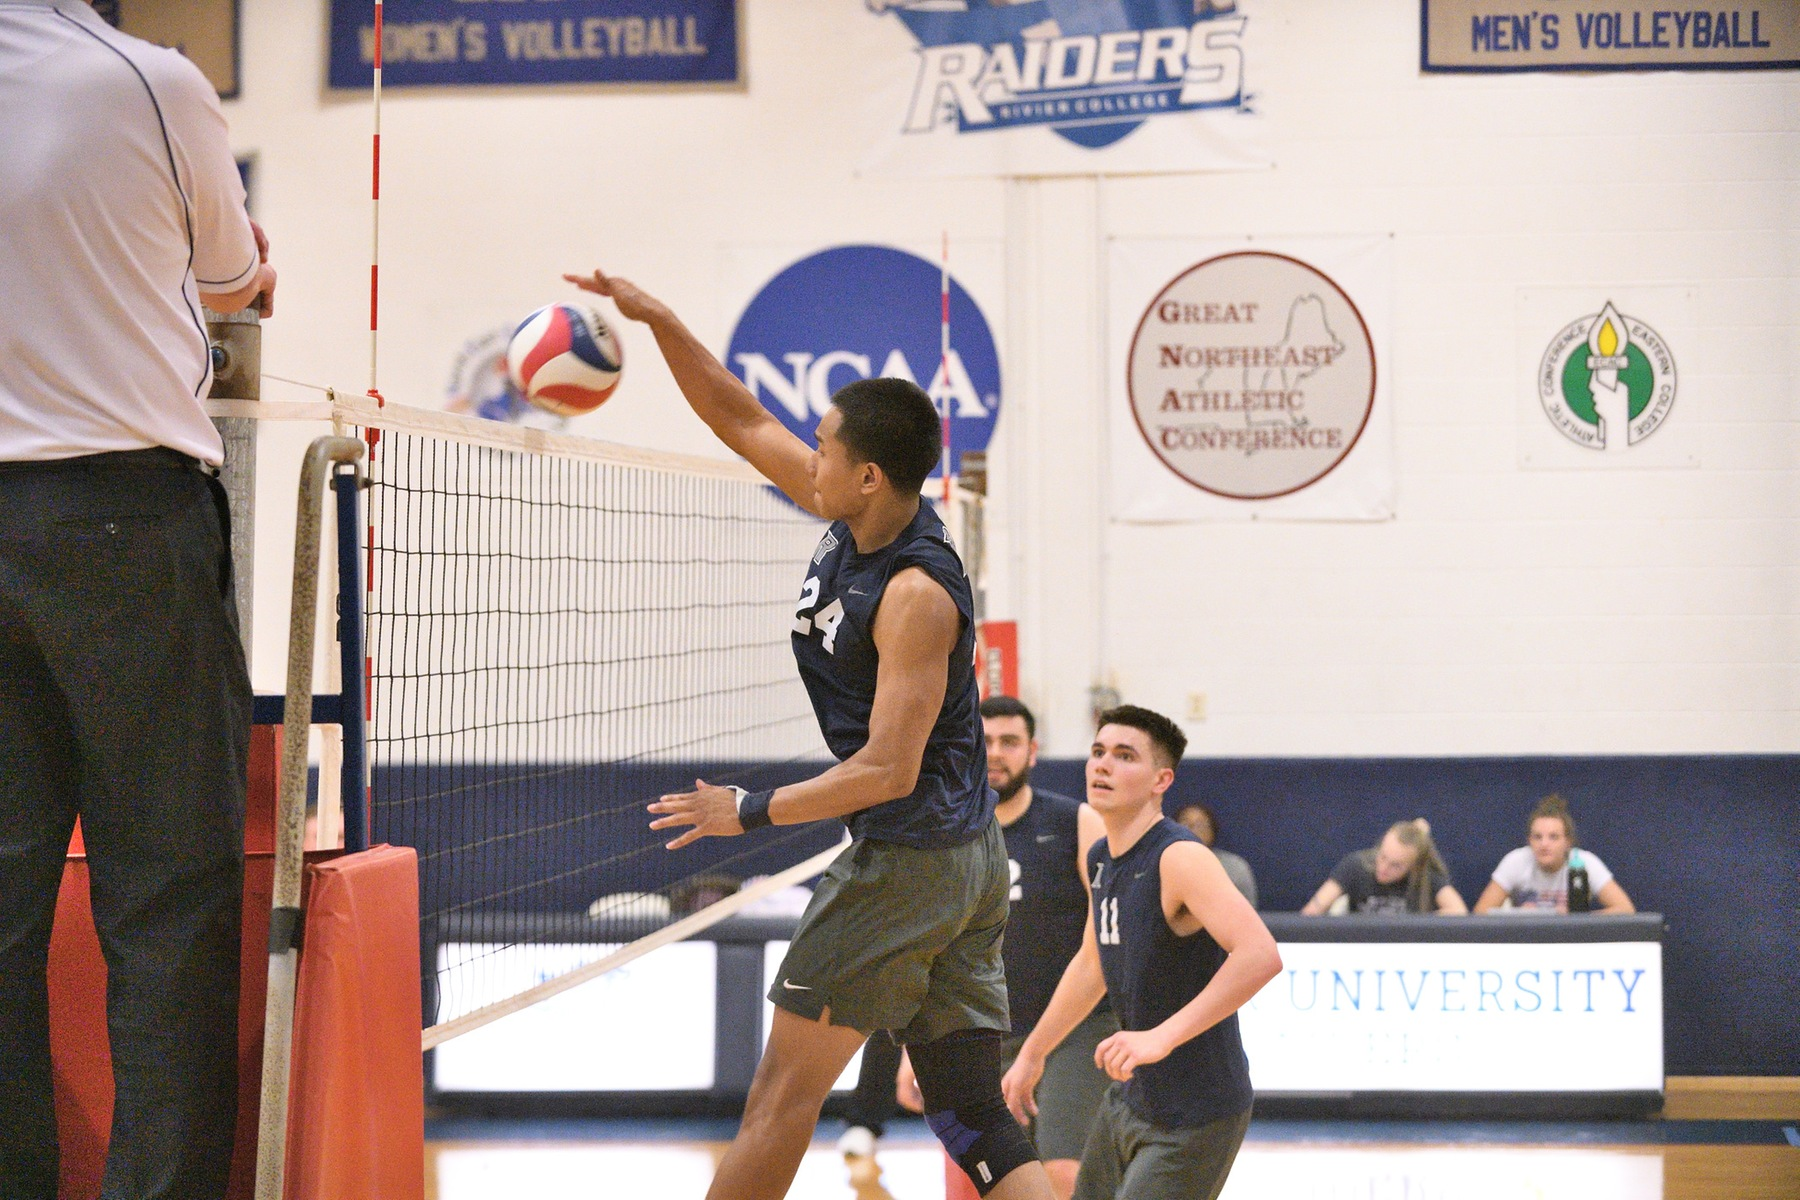 Men's Volleyball: The Raiders sweep the Chargers, 3-0.